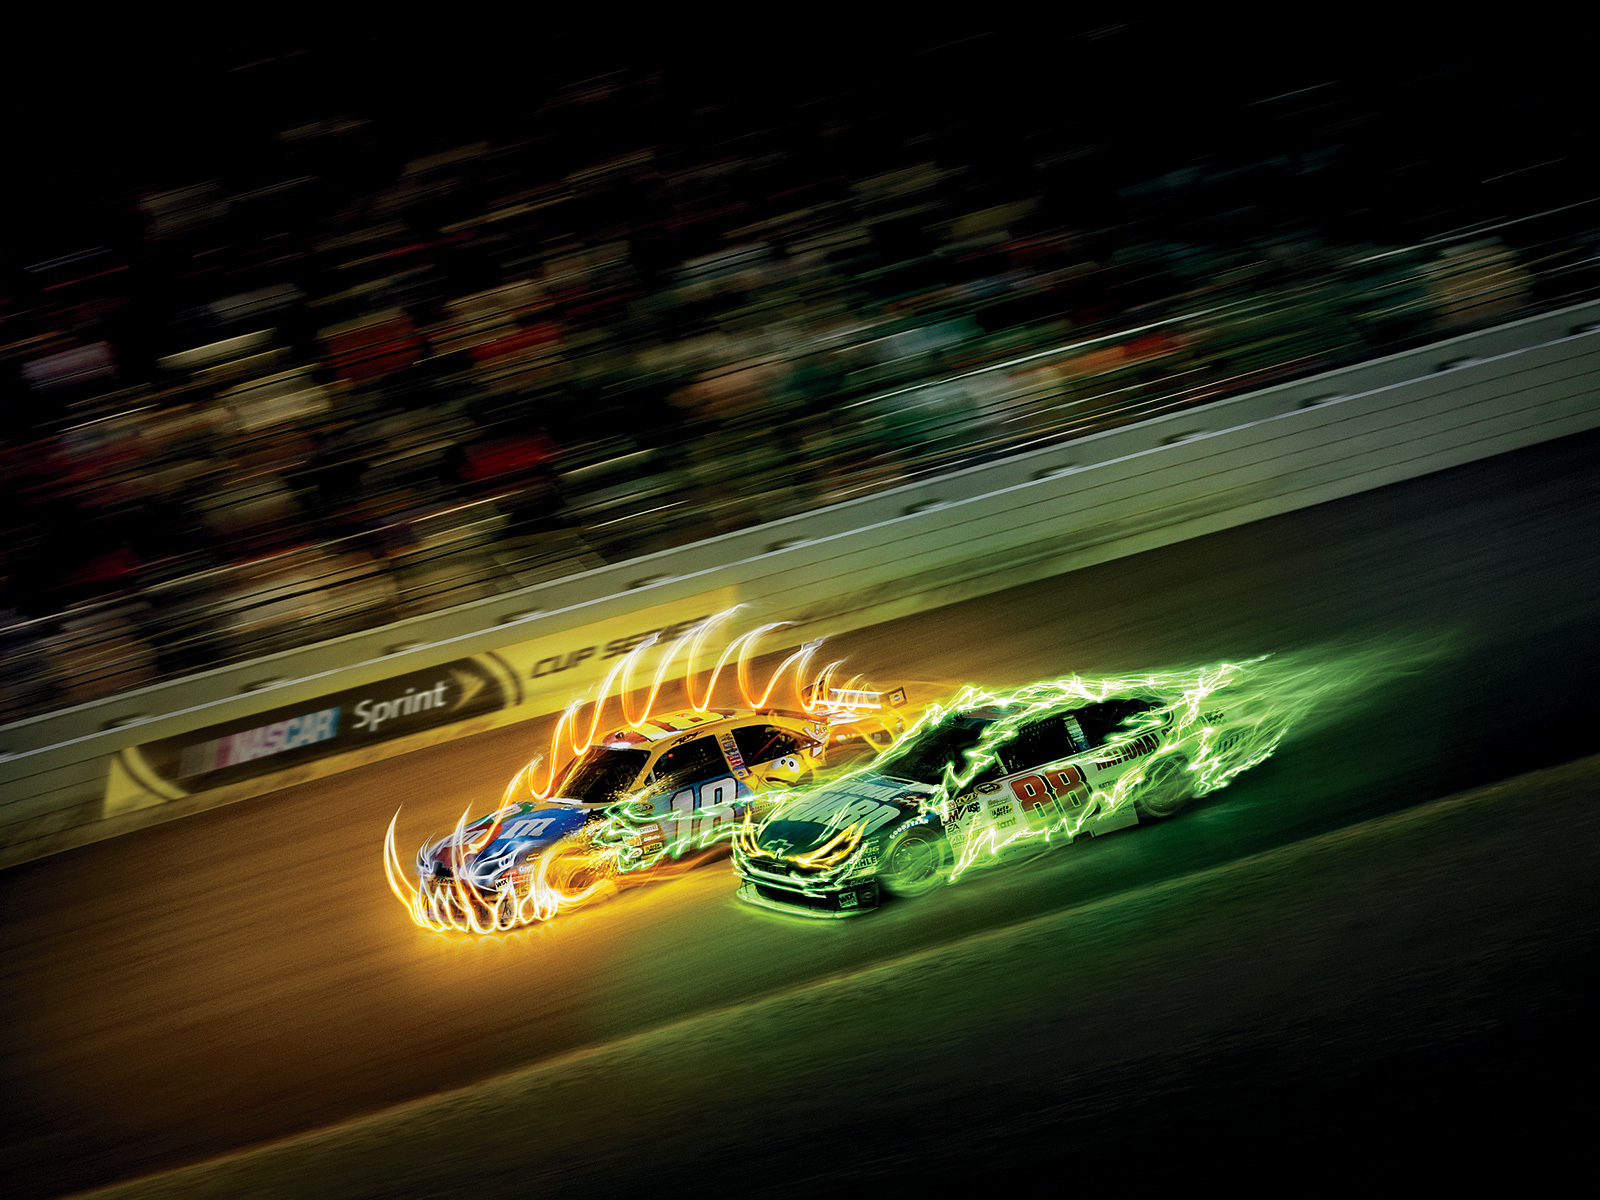 HD Nascar Wallpapers Auto Sports HD Car Wallpapers 1600x1200